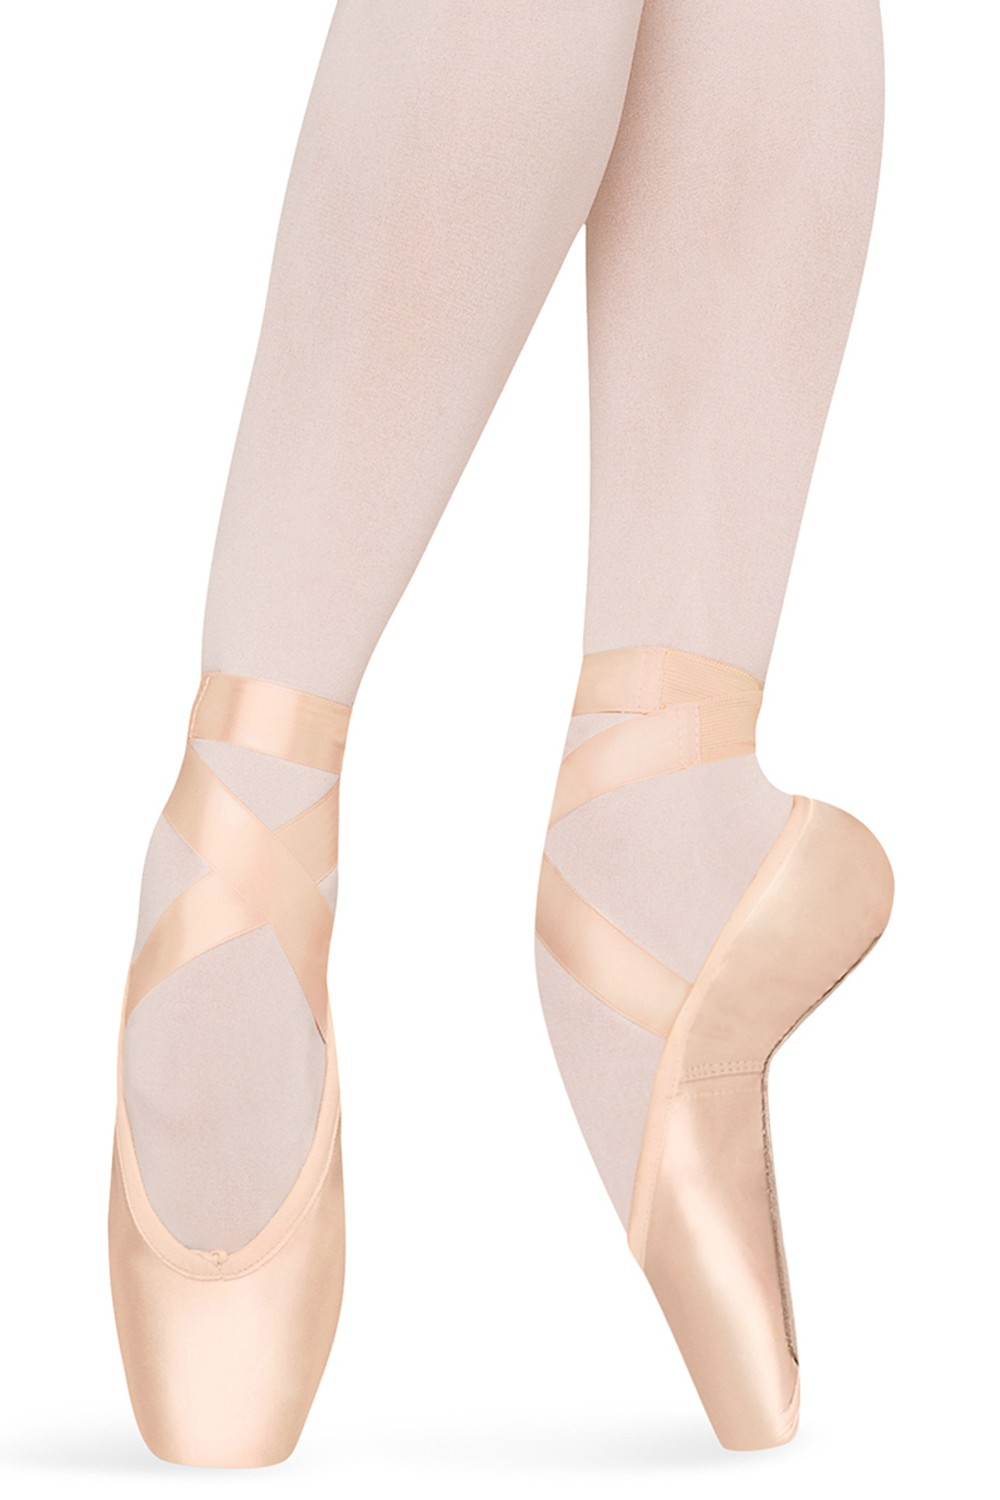 Axiom Strong Pointe Shoes